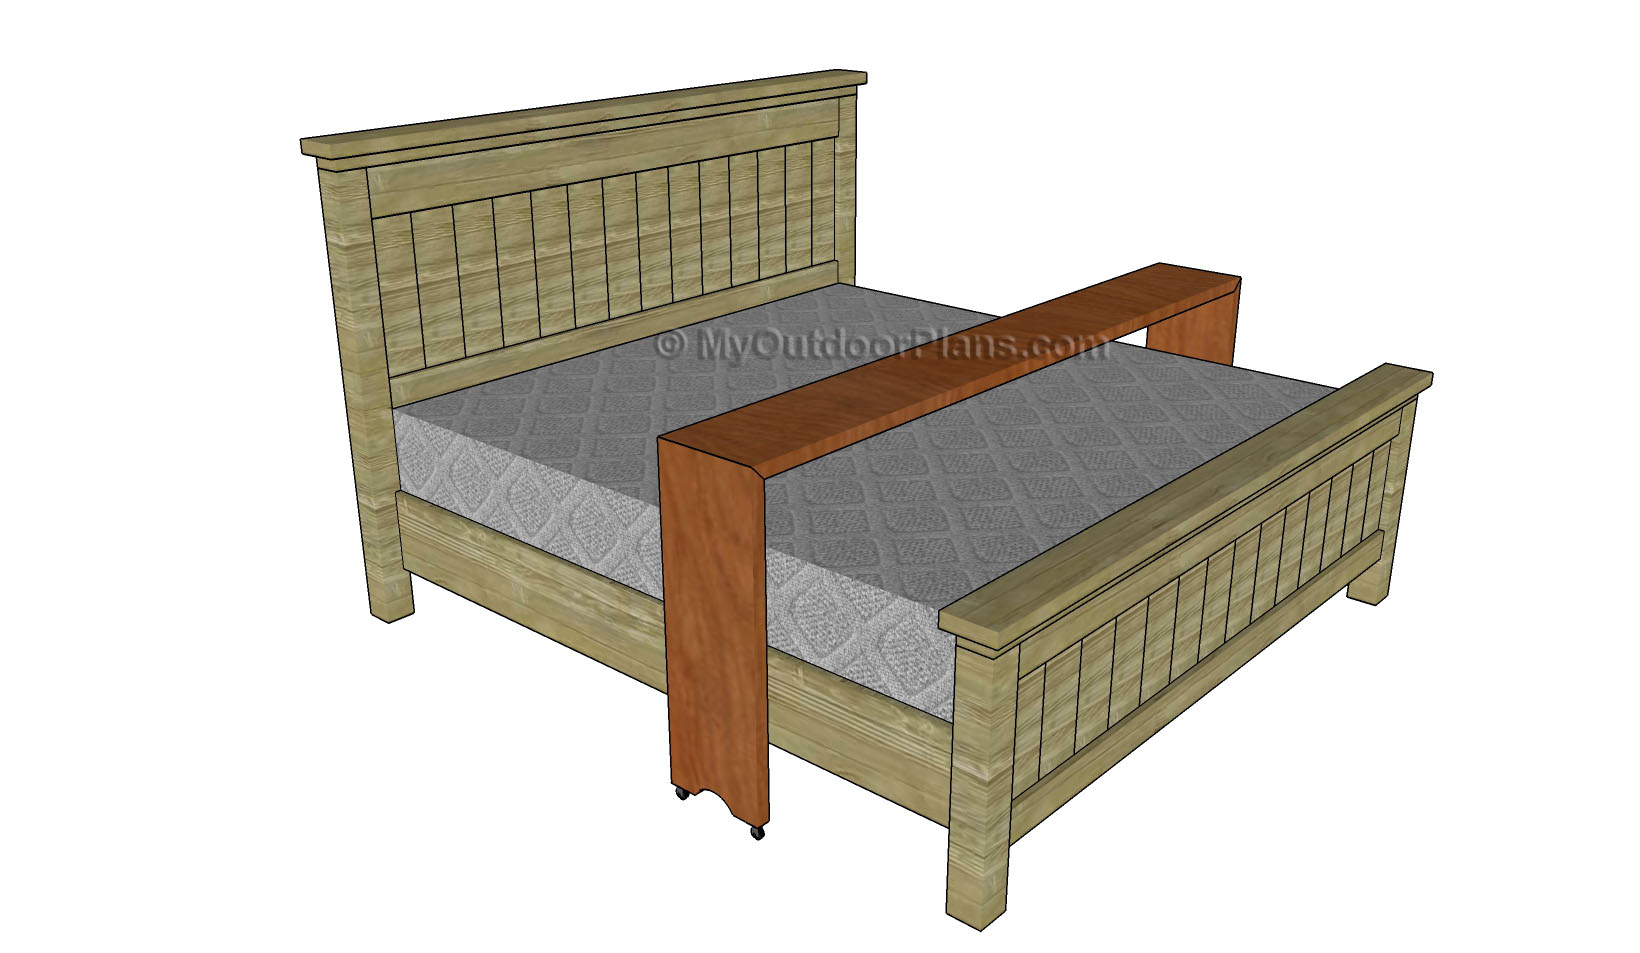 Bed Table Plans